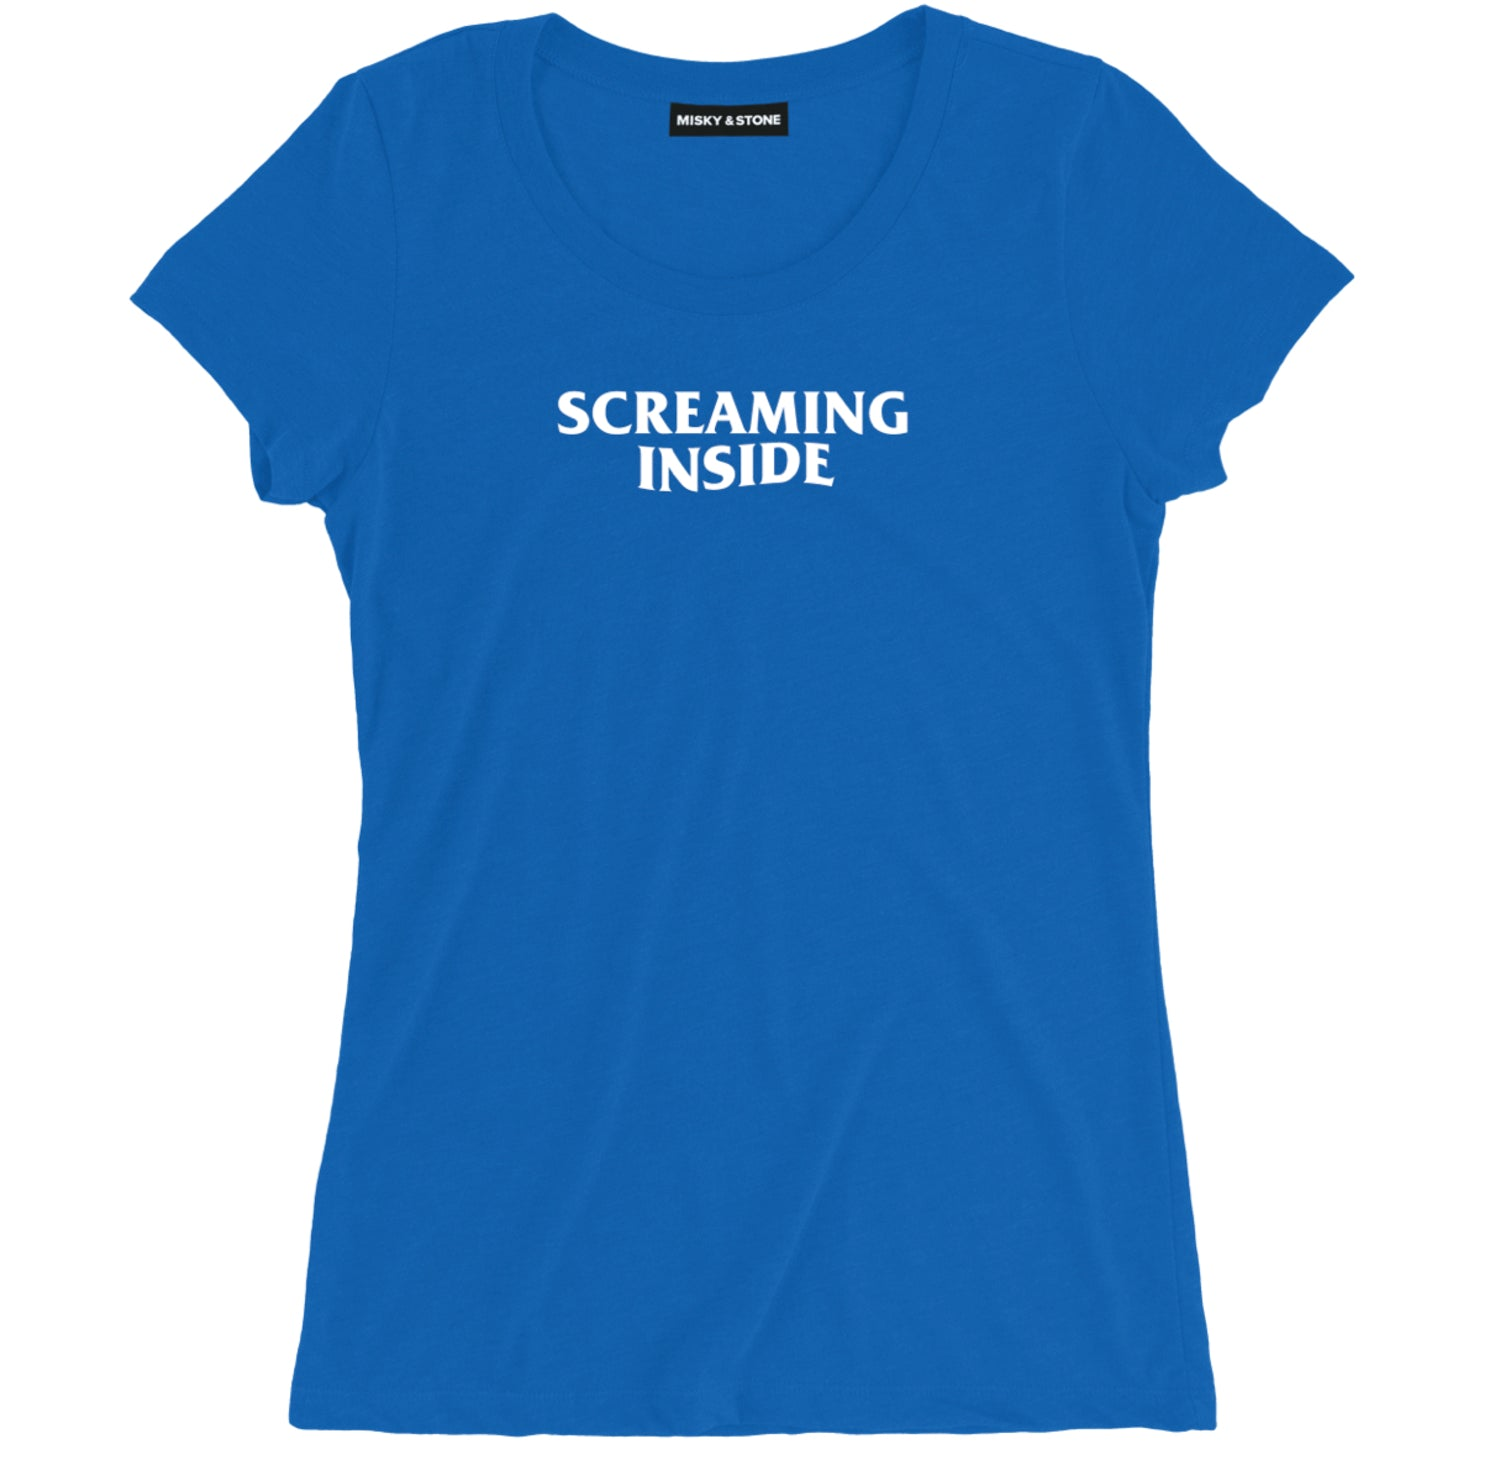 Screaming Inside Funny Sarcastic Shirt